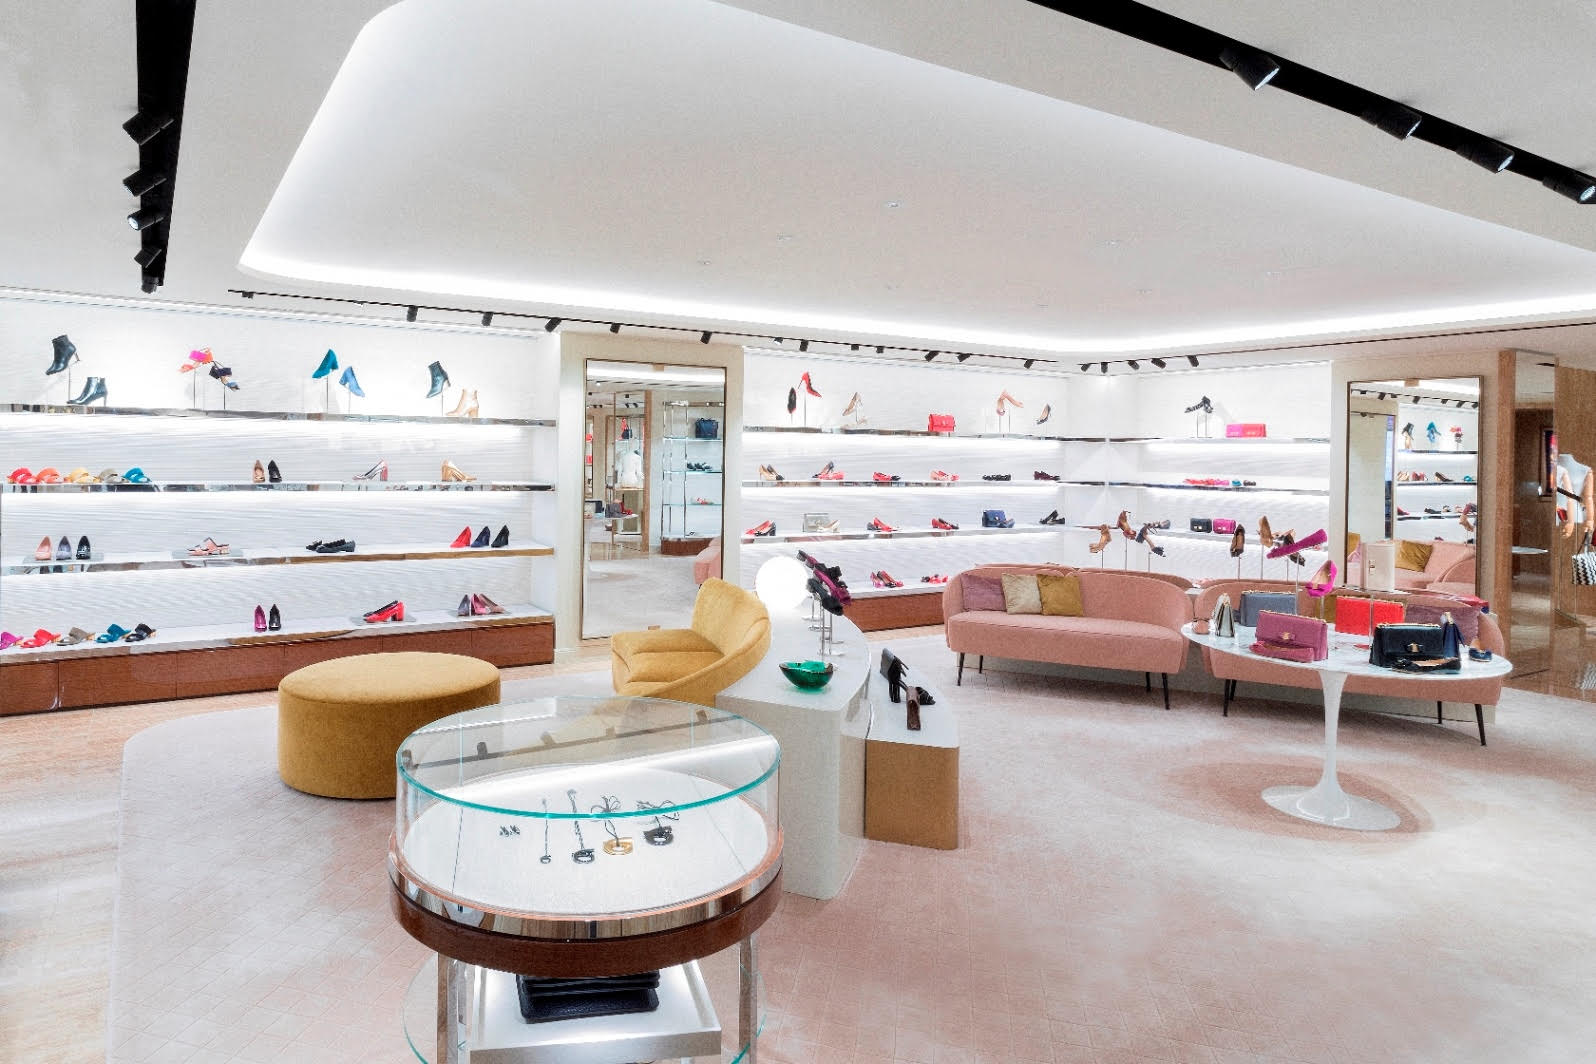 SALVATORE FERRAGAMO'S HISTORIC CANTON ROAD BOUTIQUE OPENING IN HONG KONG